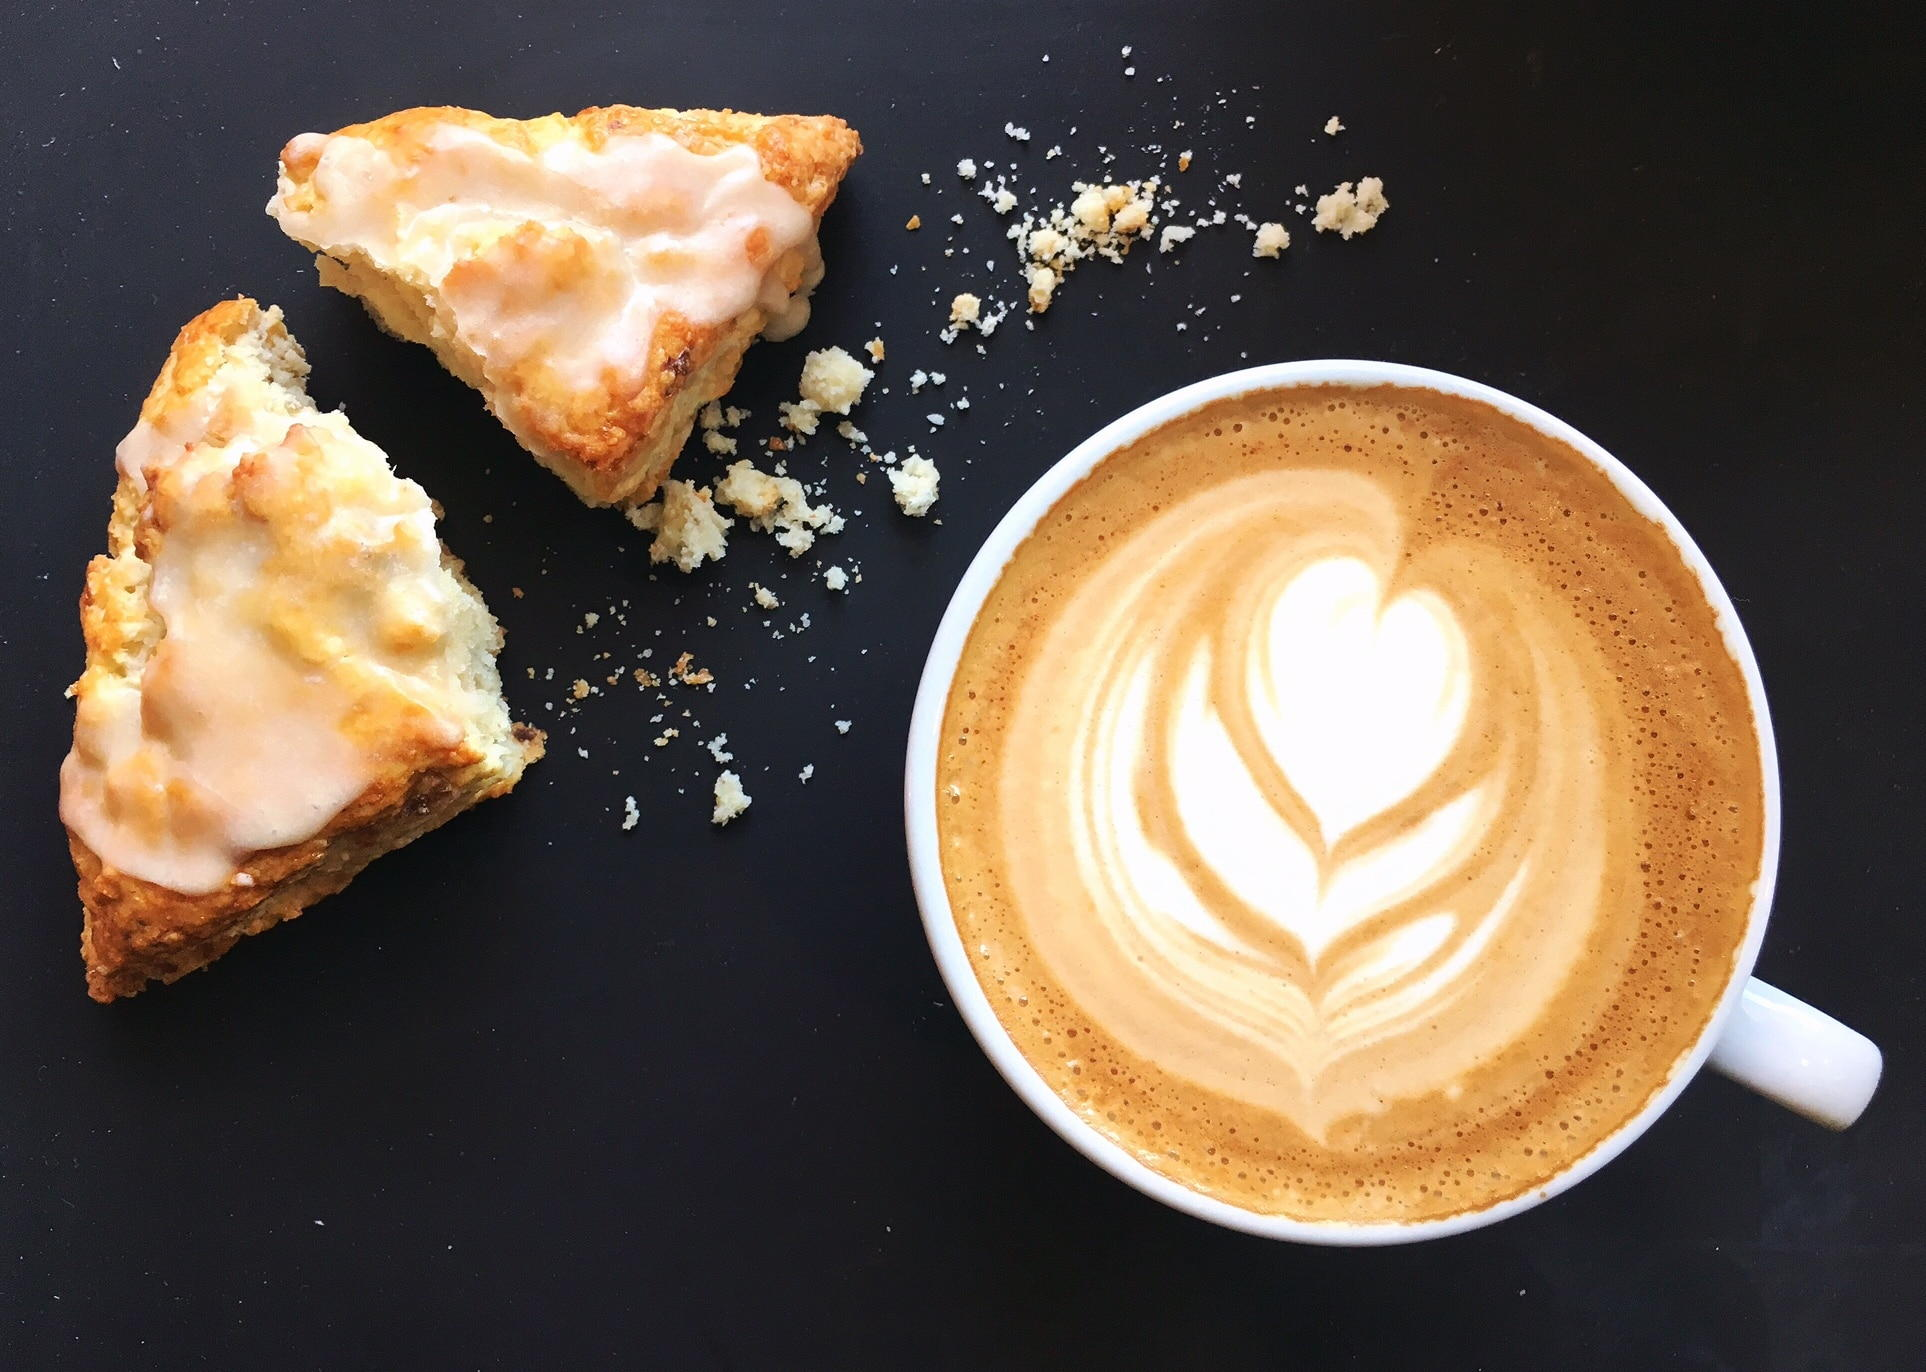 latte and scone